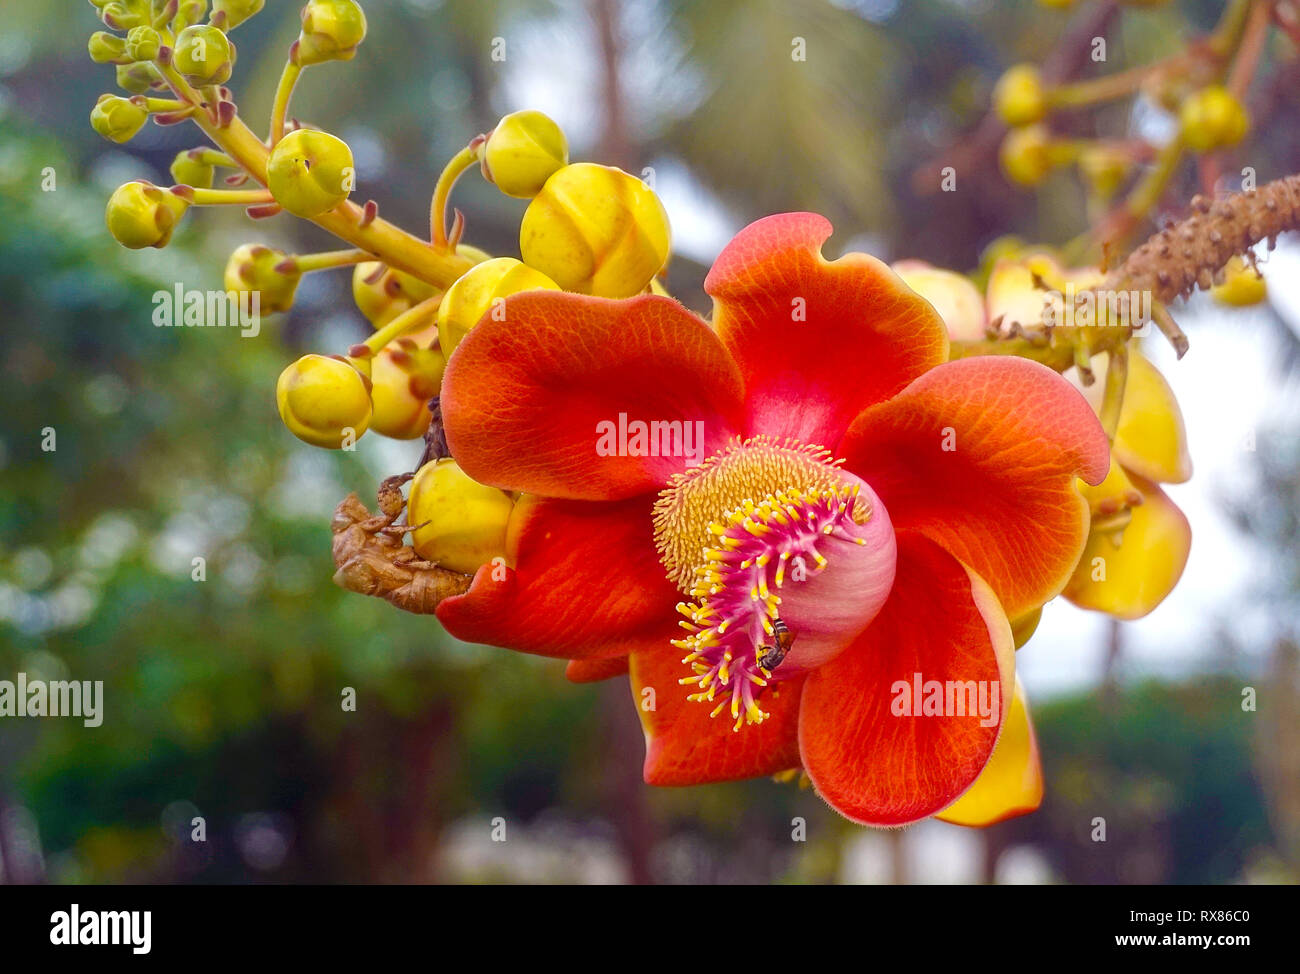 Blossom of a Cannonball tree (Couroupita guianensis Aubl.), Koh Samui, Thailand - Stock Image